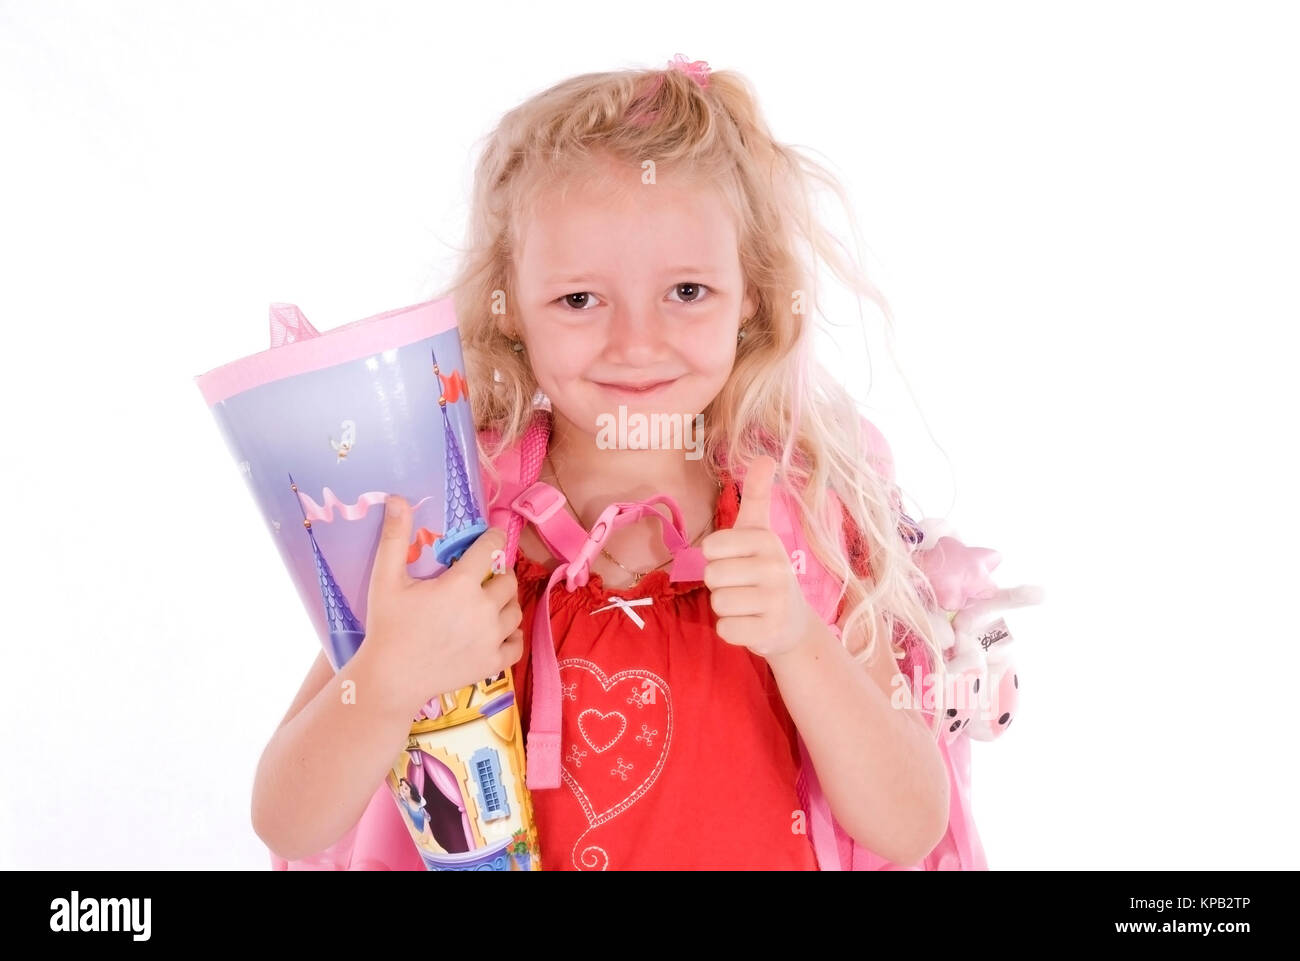 Model release, Schulanfaengerin mit Schultuete - first grader with First-Day-of School-cornet - Stock Image